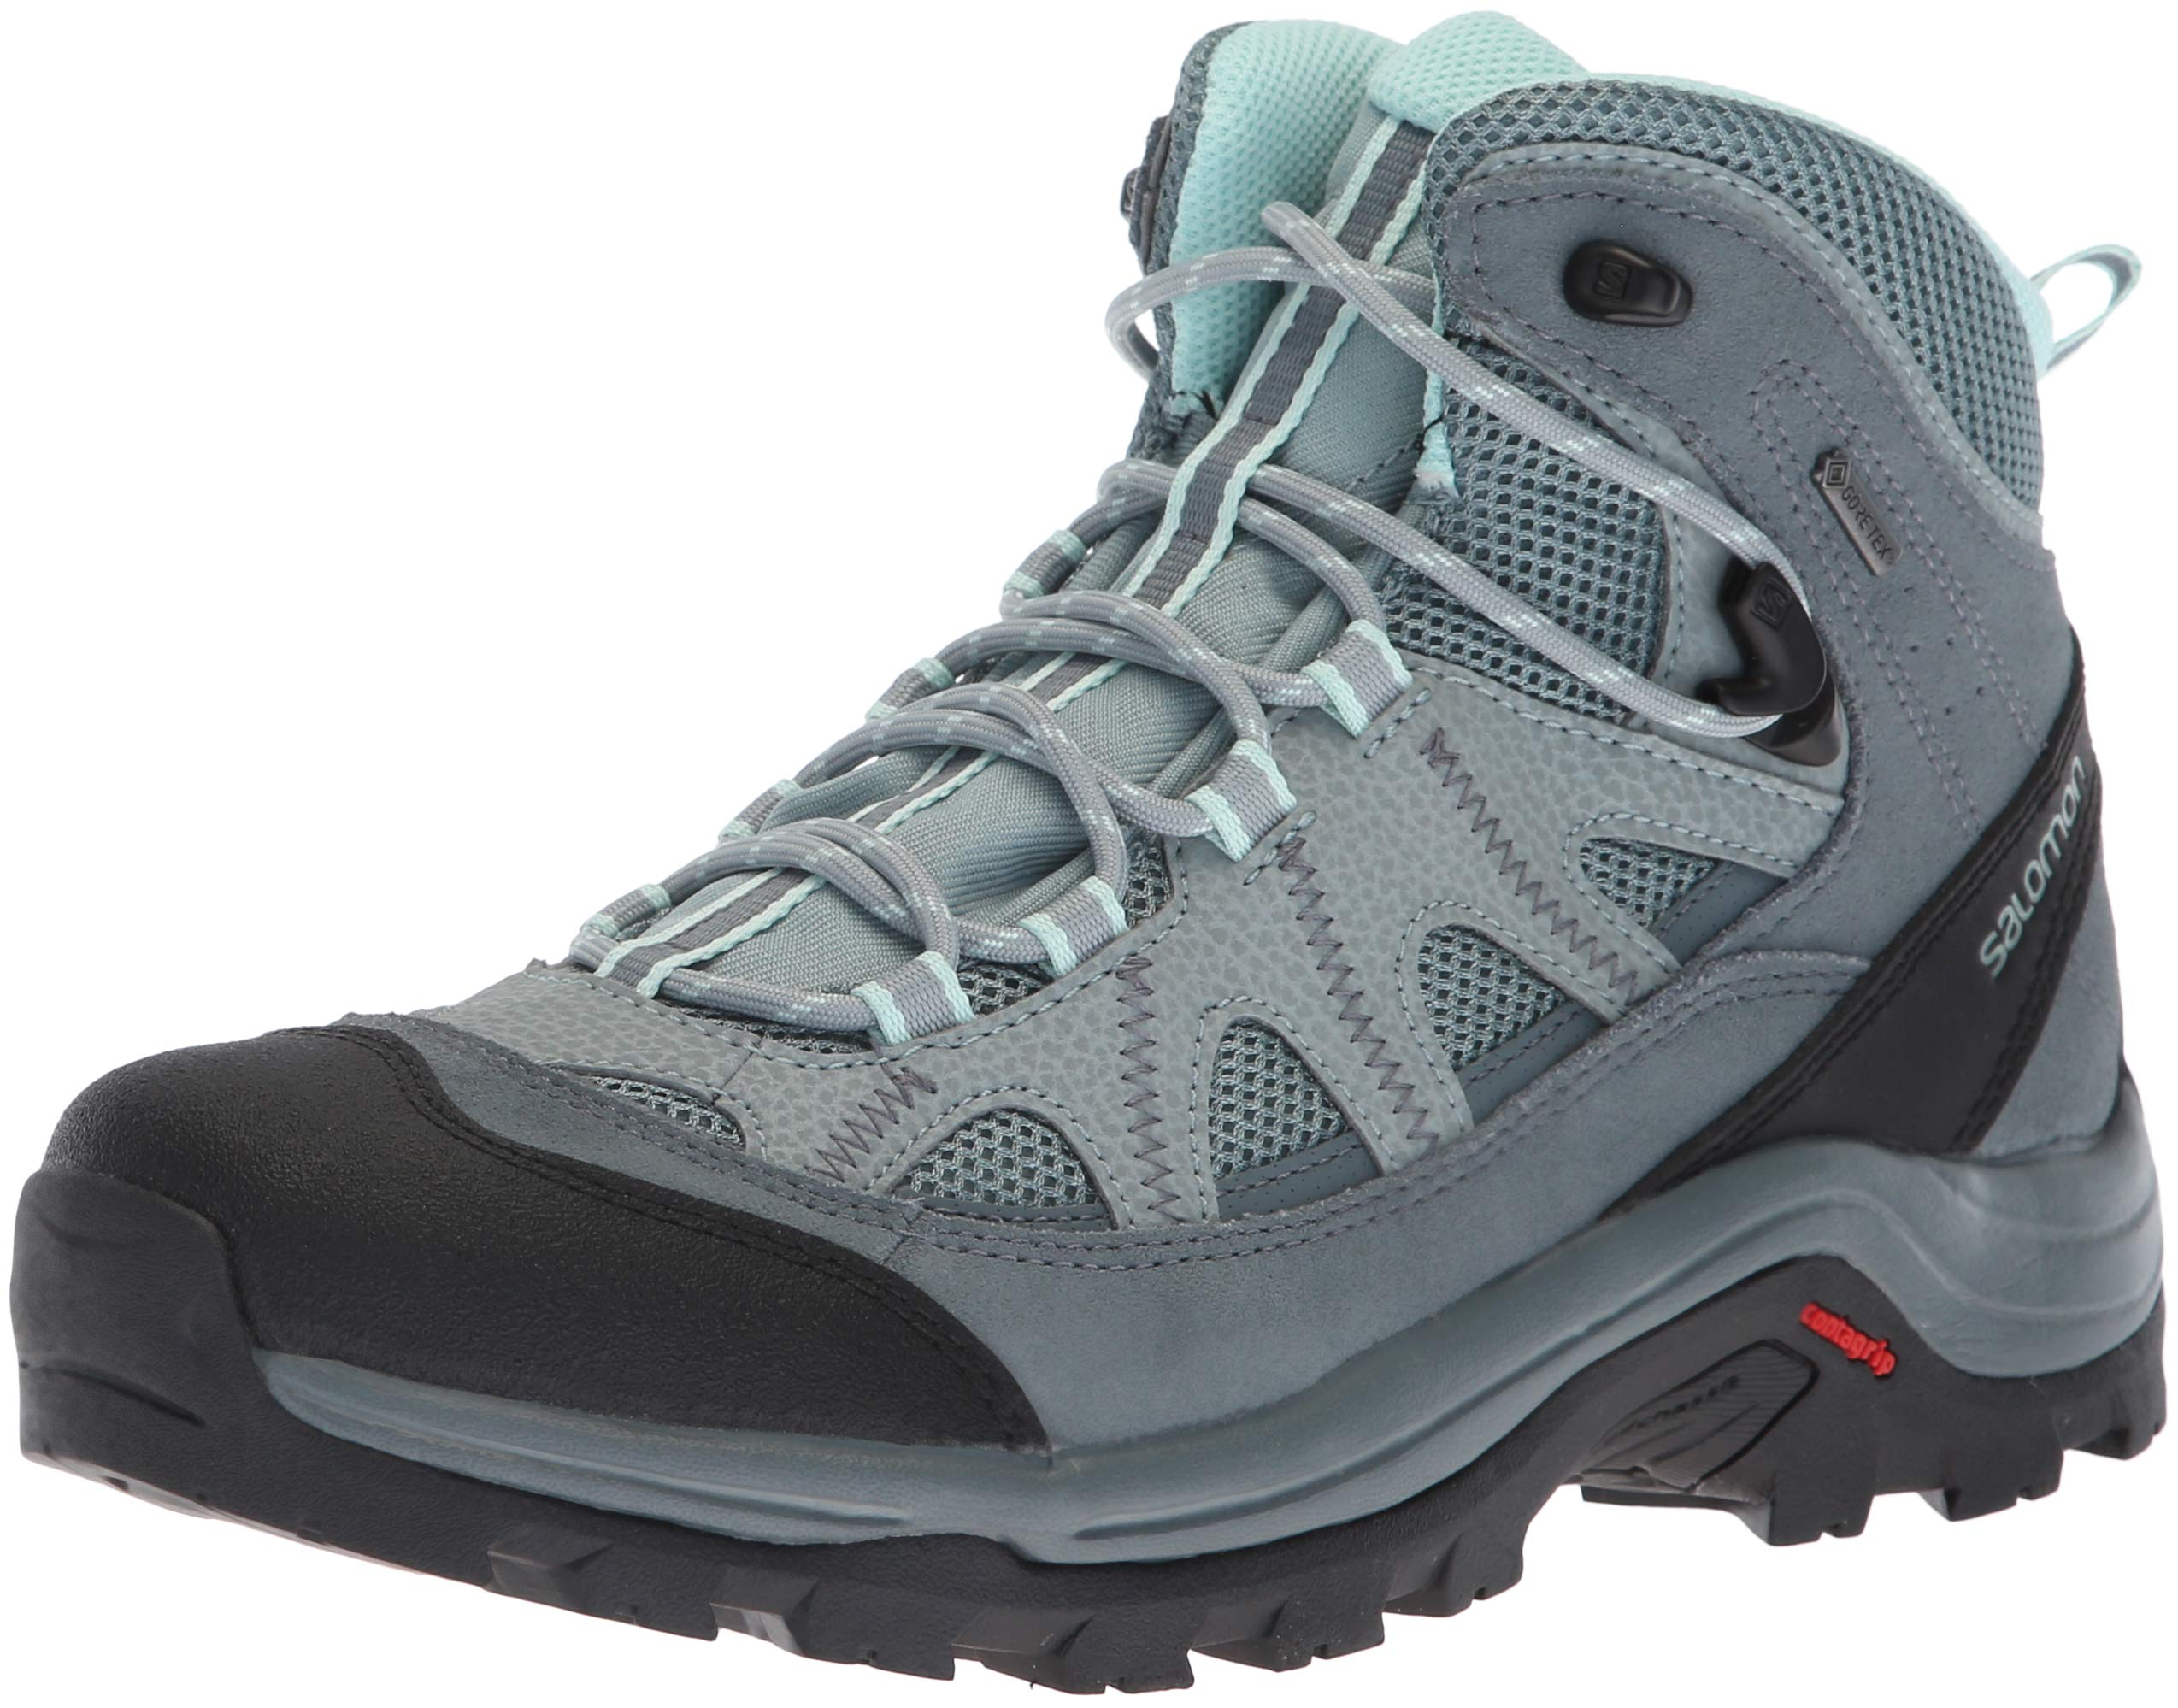 Salomon Women's Authentic LTR GTX W Backpacking Boot, Lead/Stormy Weather/Eggshell Blue, 7.5 B US